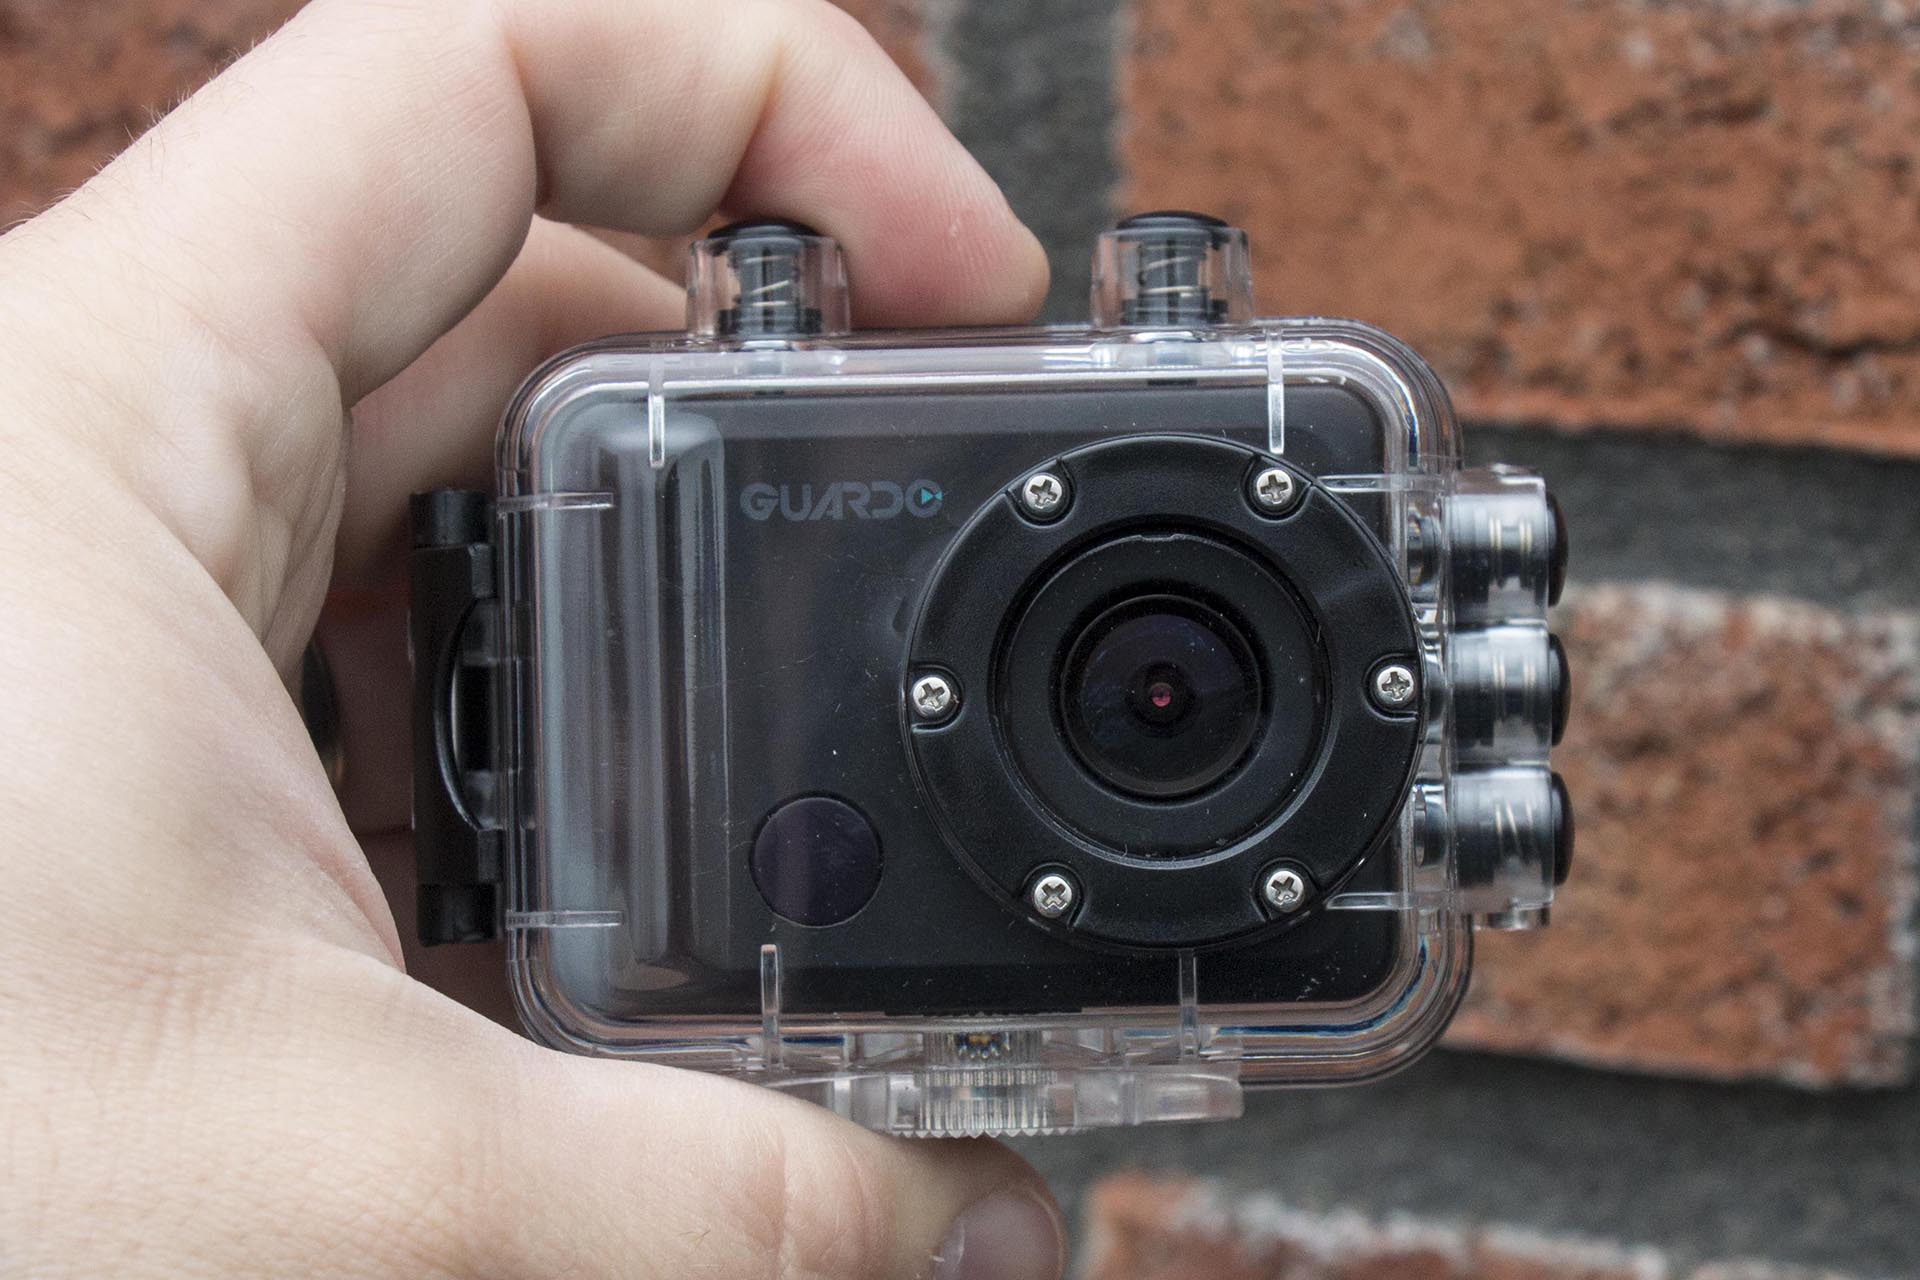 Slimme Verlichting Action Review Guardo Action Cam One Gadgetgear Nl